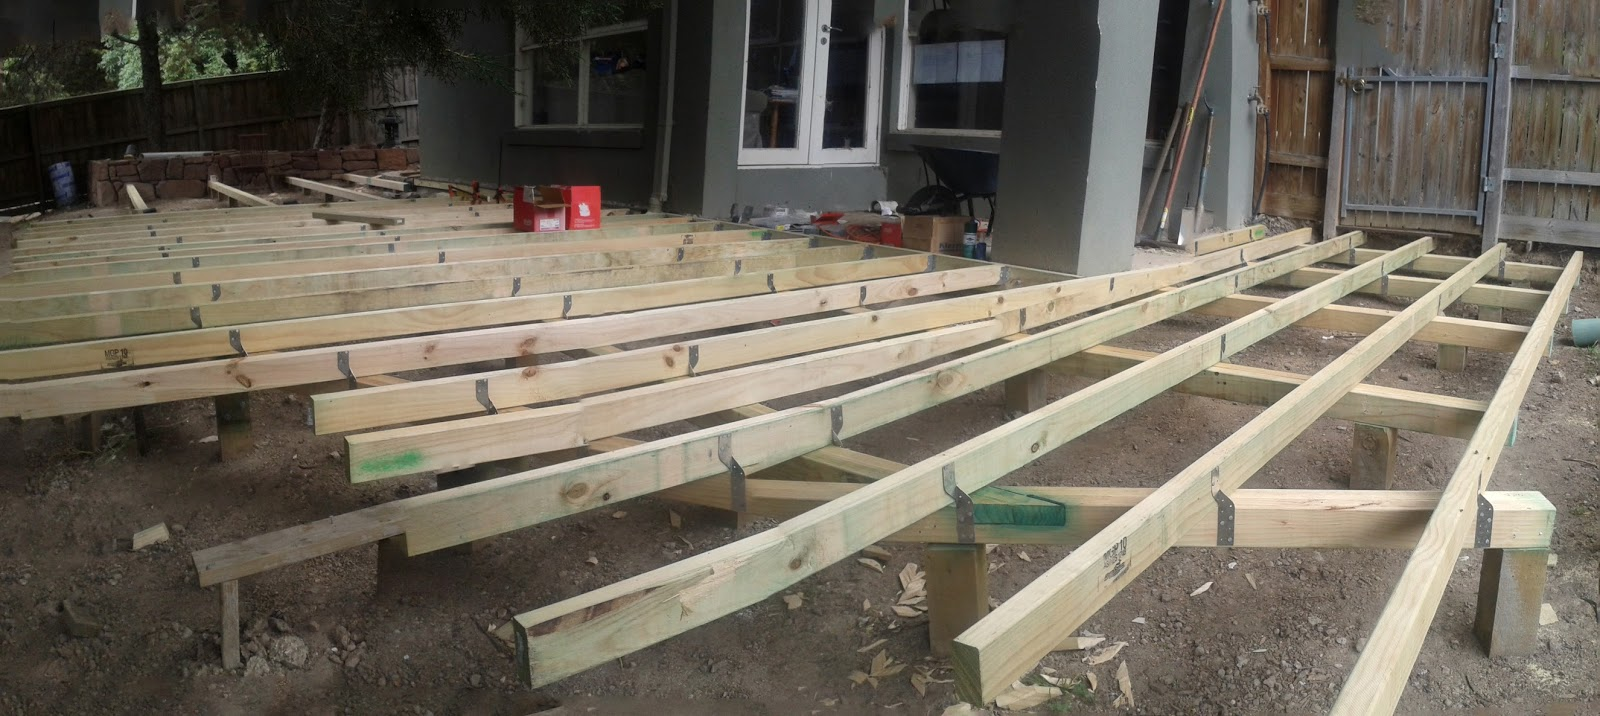 Let's Build A Deck: Deck Building. Laying In The Ledger